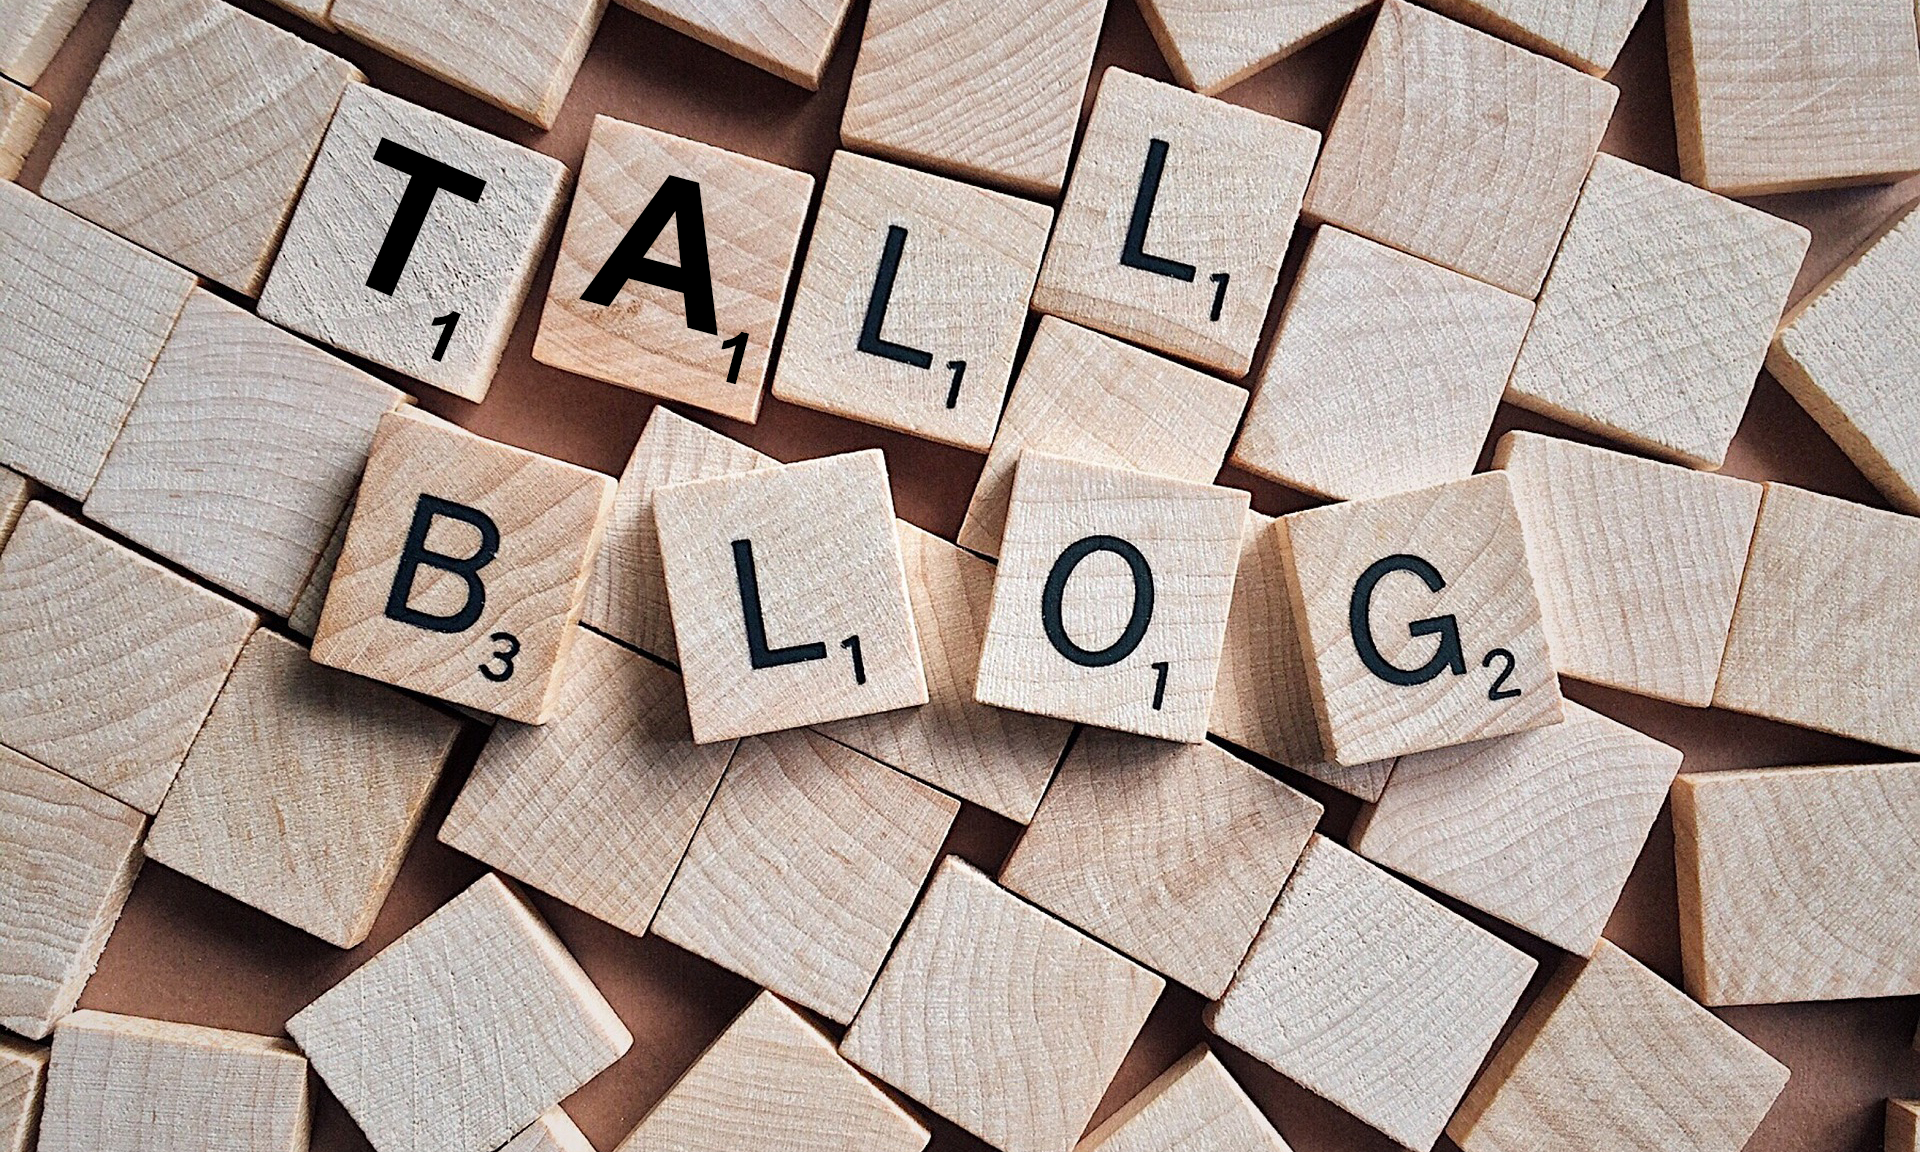 The TALL blog Page